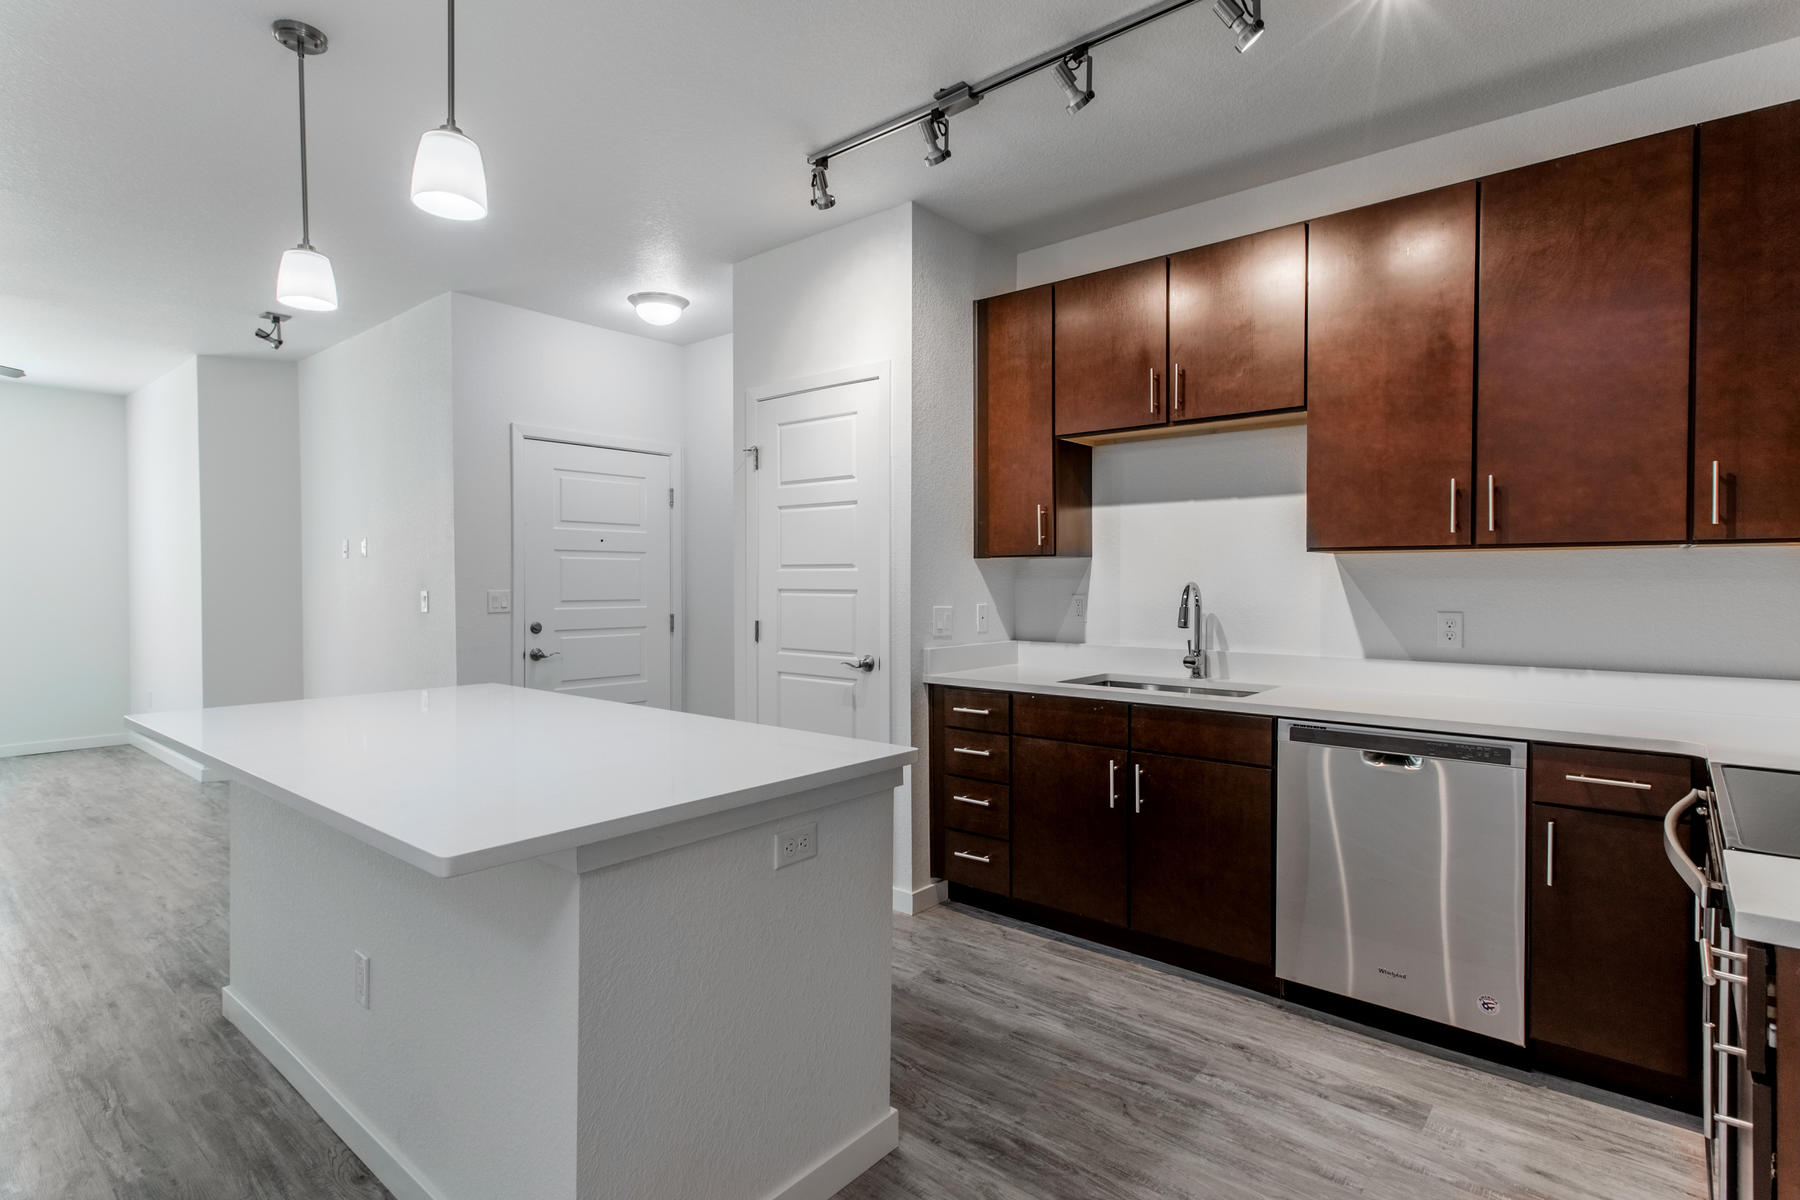 Single Family Home for Active at Come celebrate the opening of our next building 17353 Wilde Ln #104 B, Bldg 6 Parker, Colorado 80134 United States